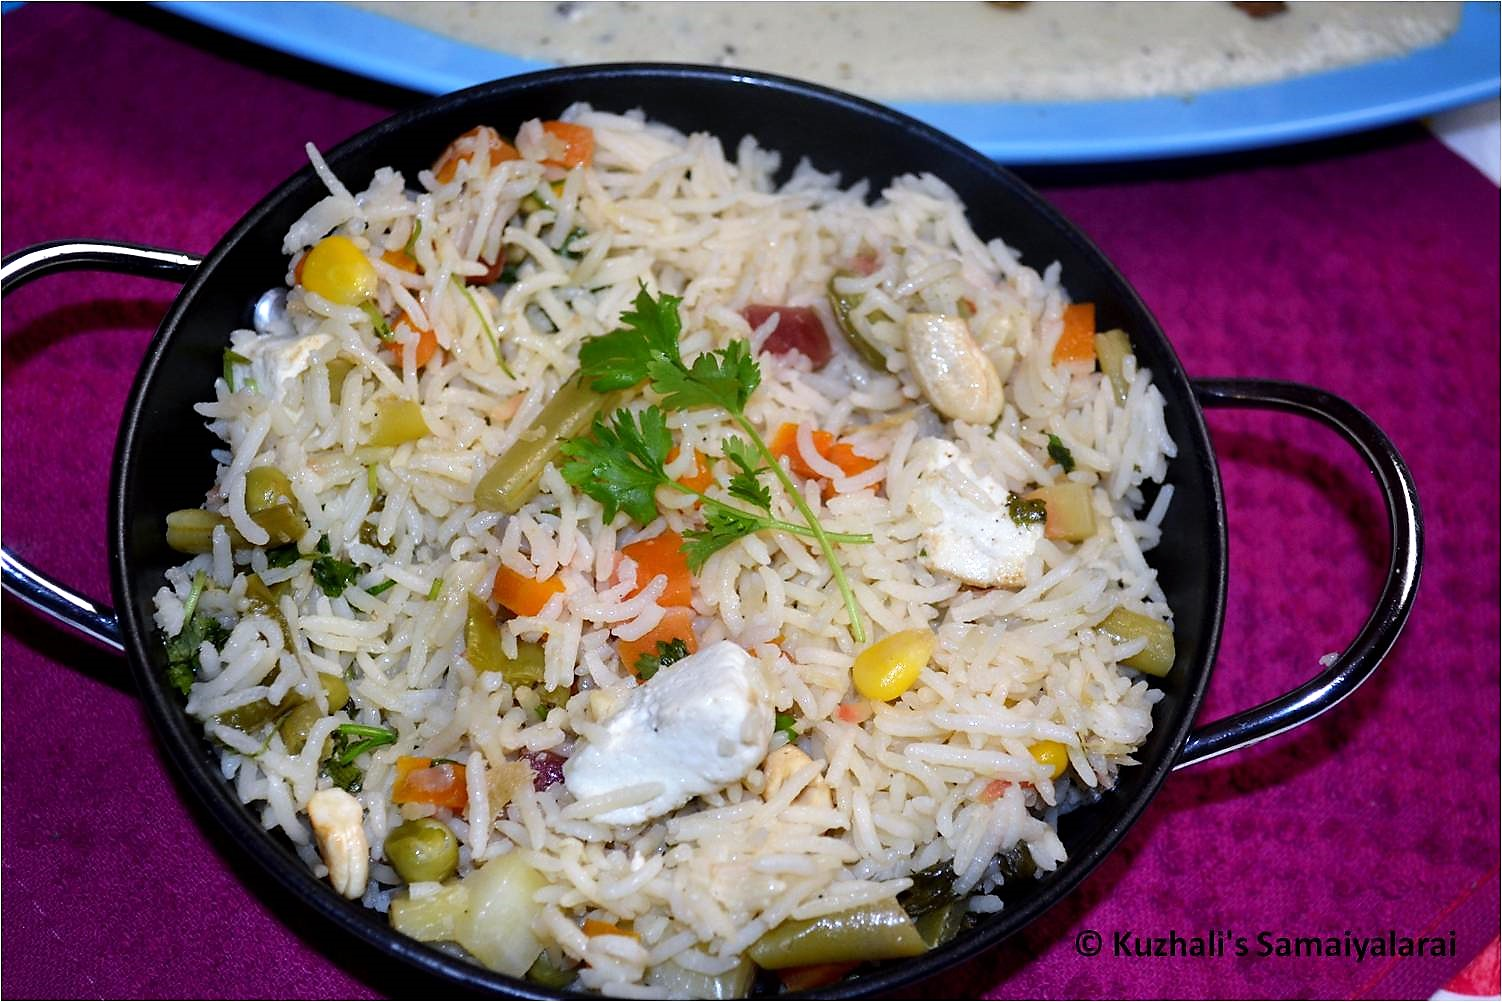 http://www.kuzhalisamaiyalarai.in/2017/06/vegetable-pulao-vegetable-pilaf-easy.html